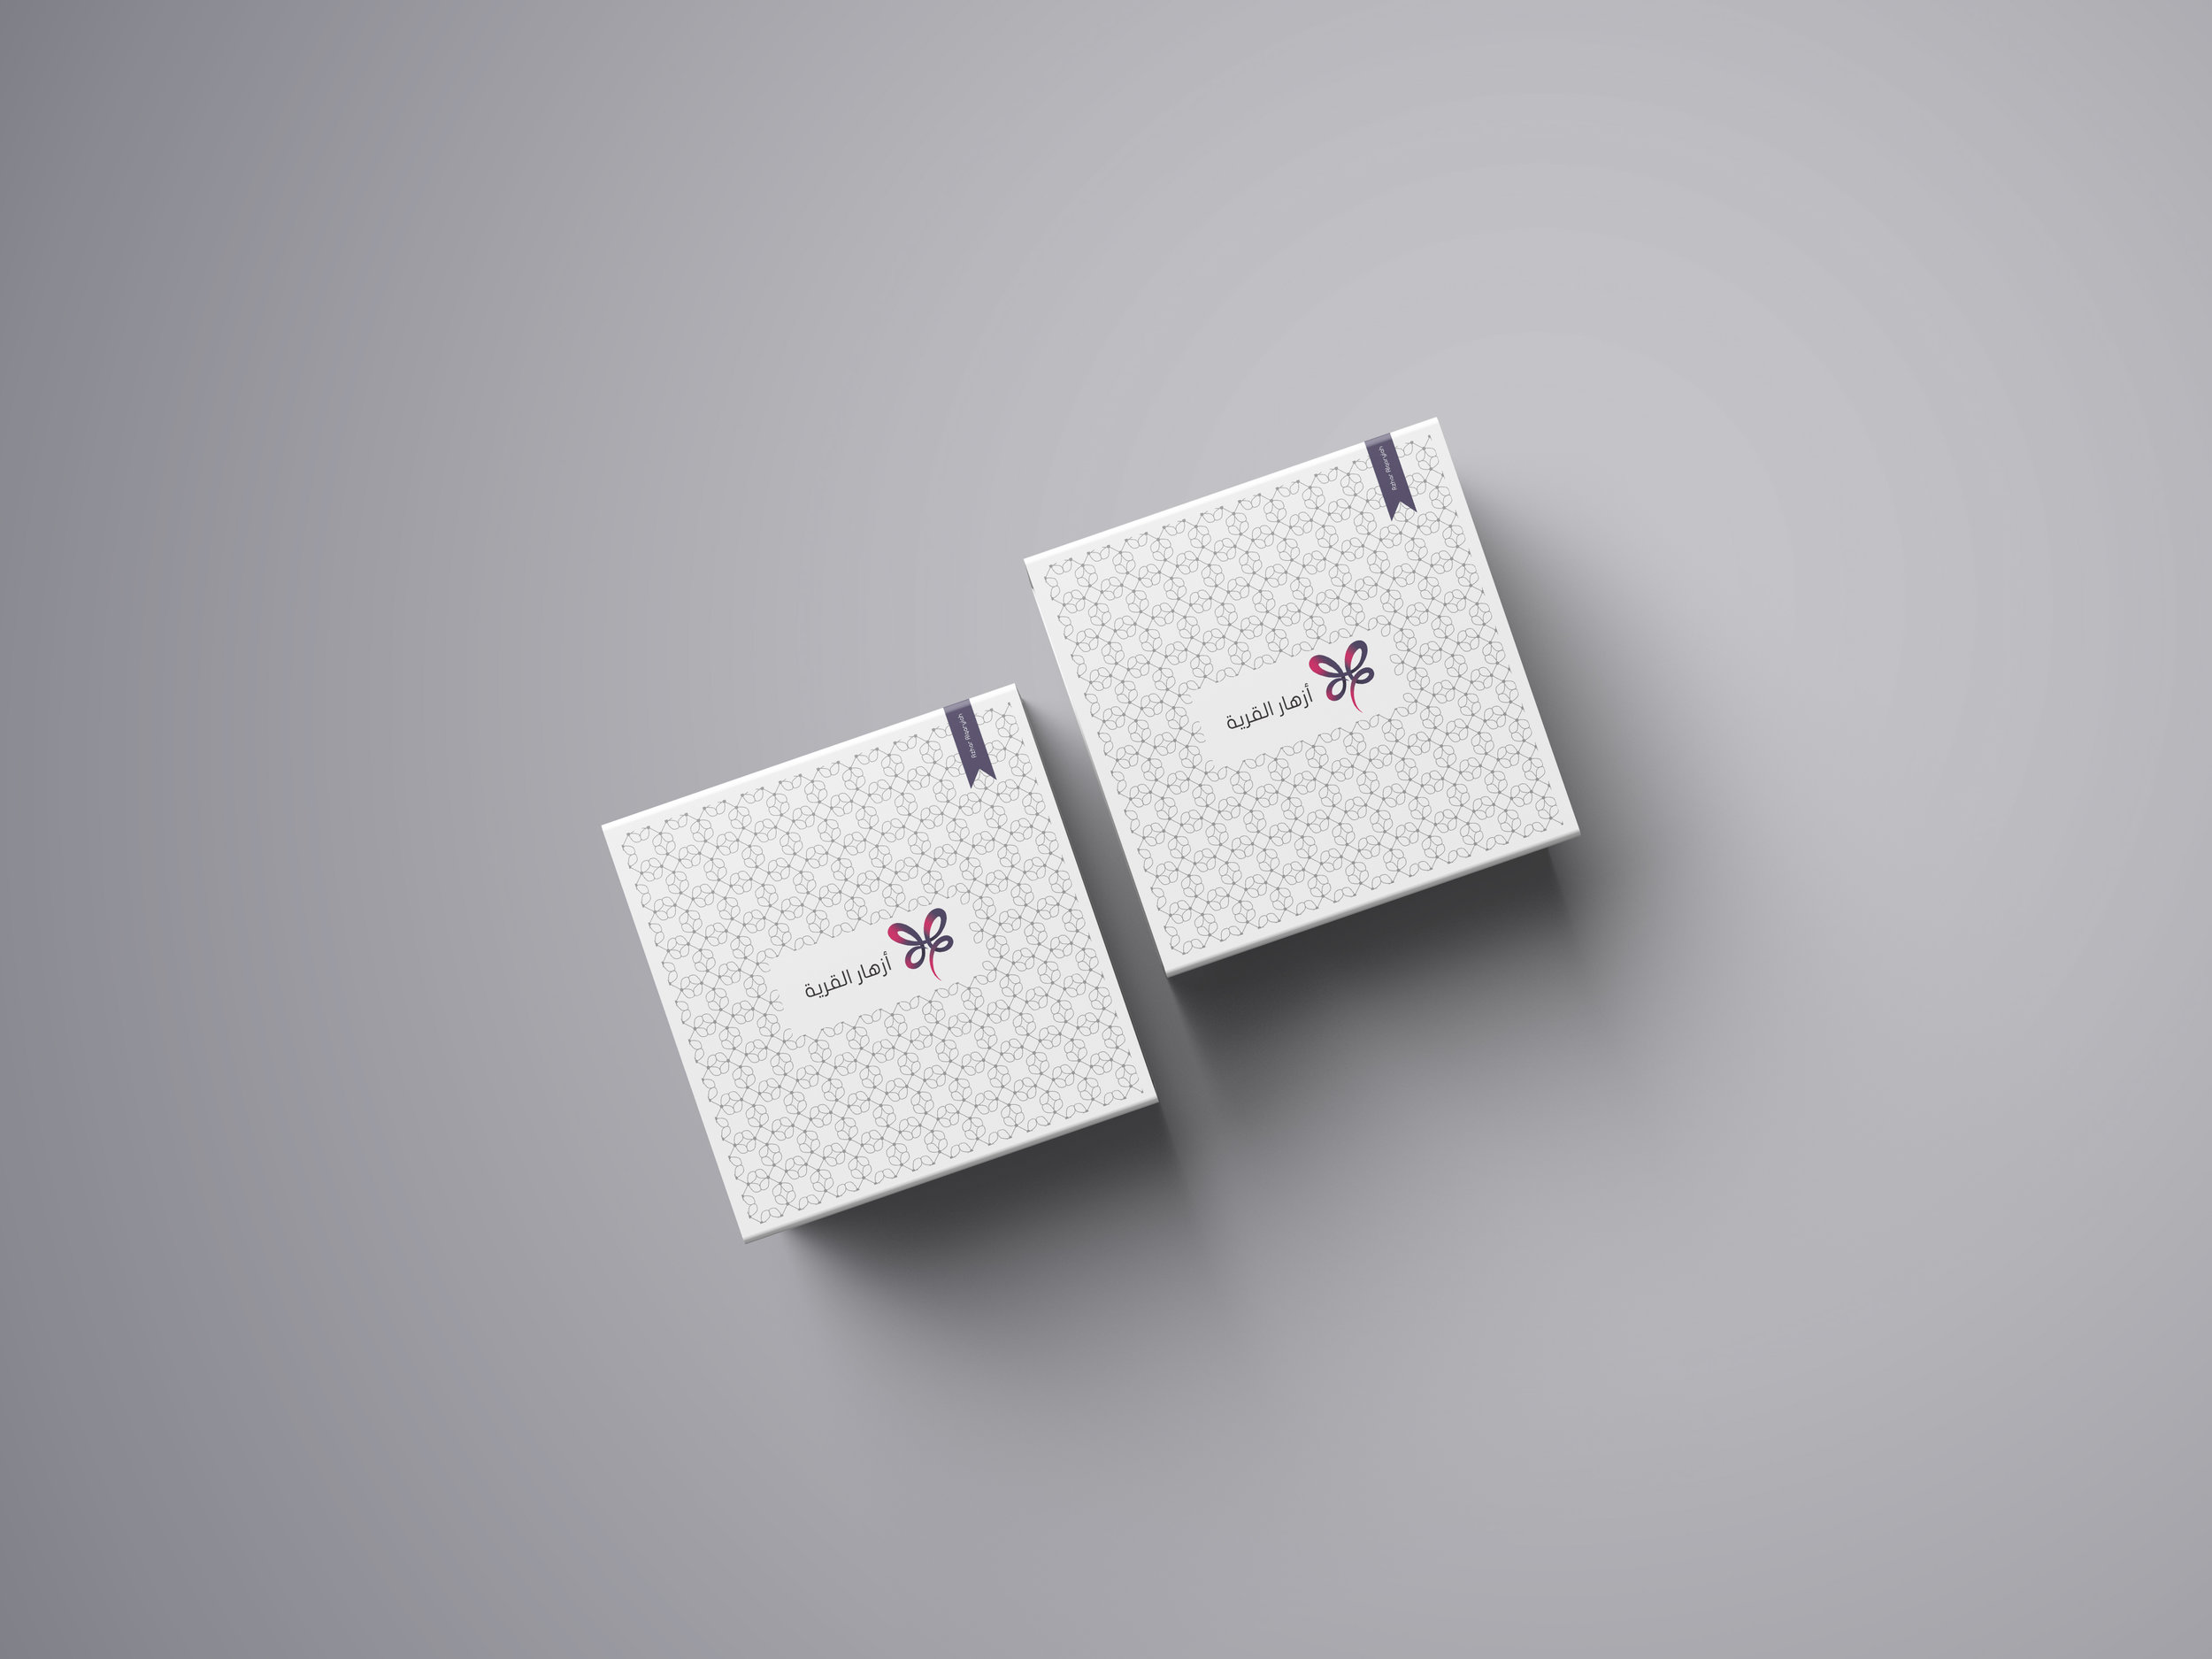 Slide Box Package Mockup 4.jpg